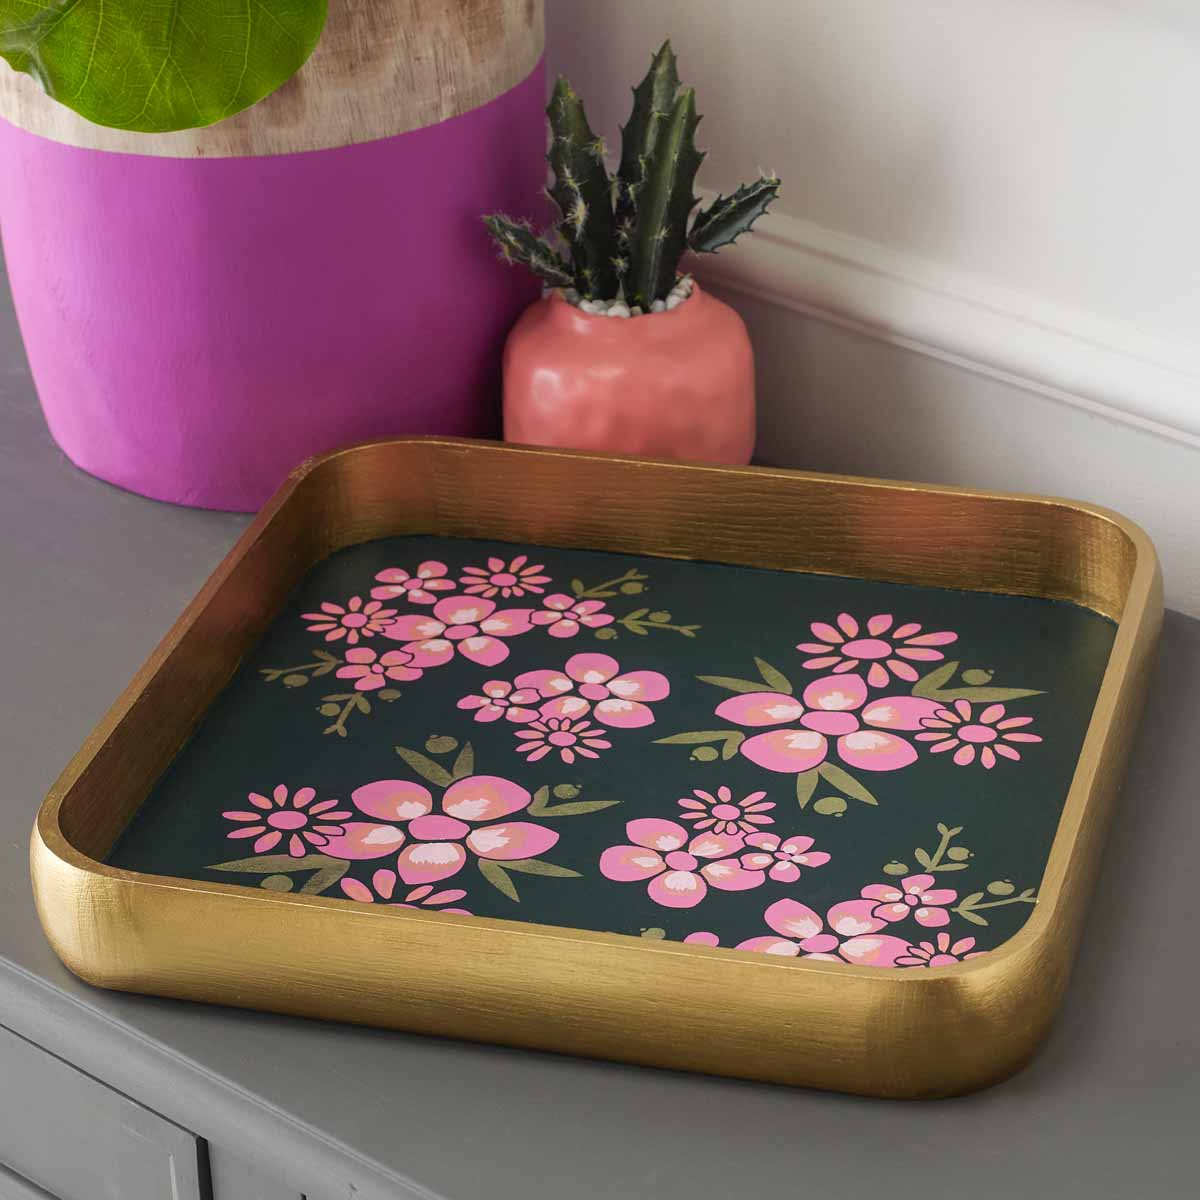 Floral Inspired Serving Tray and Vases